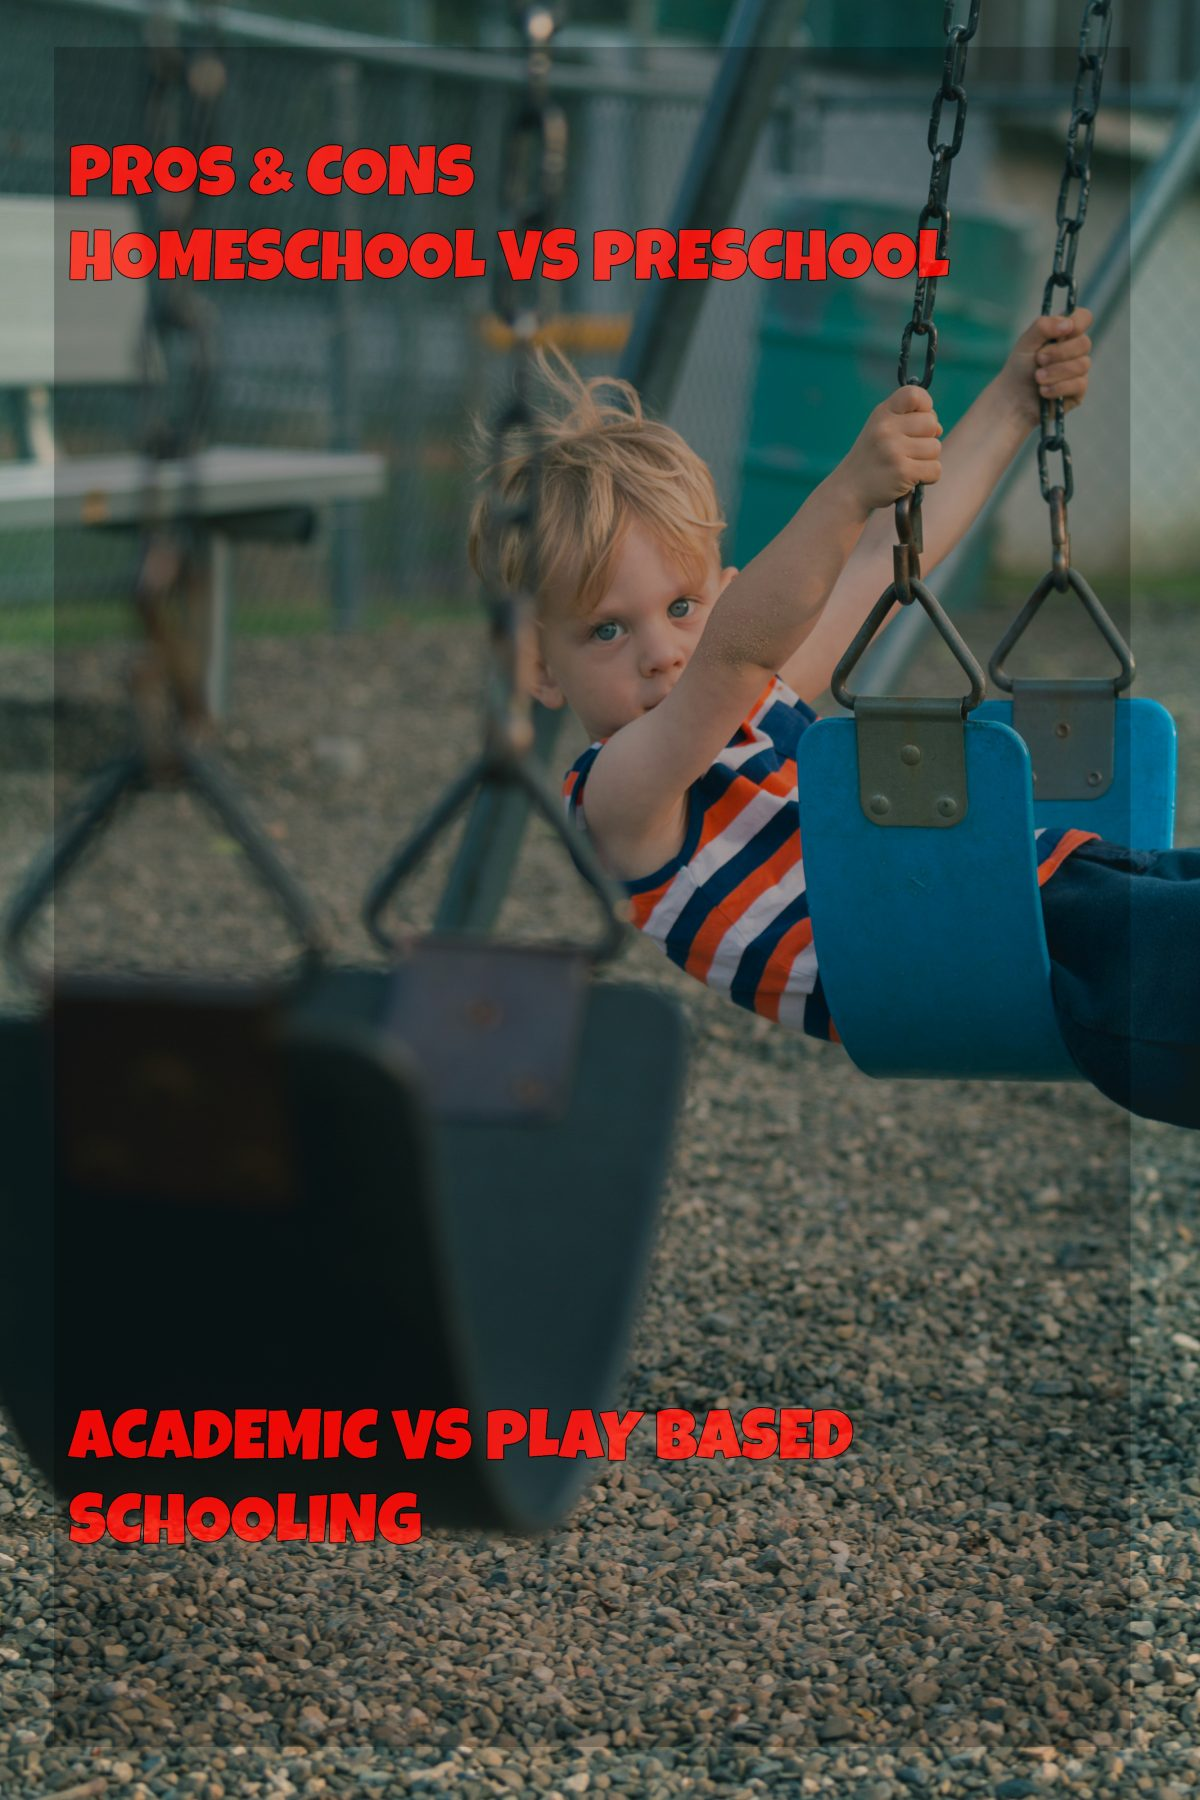 Making a Decision About Preschool: educating at home versus enrolling in public school